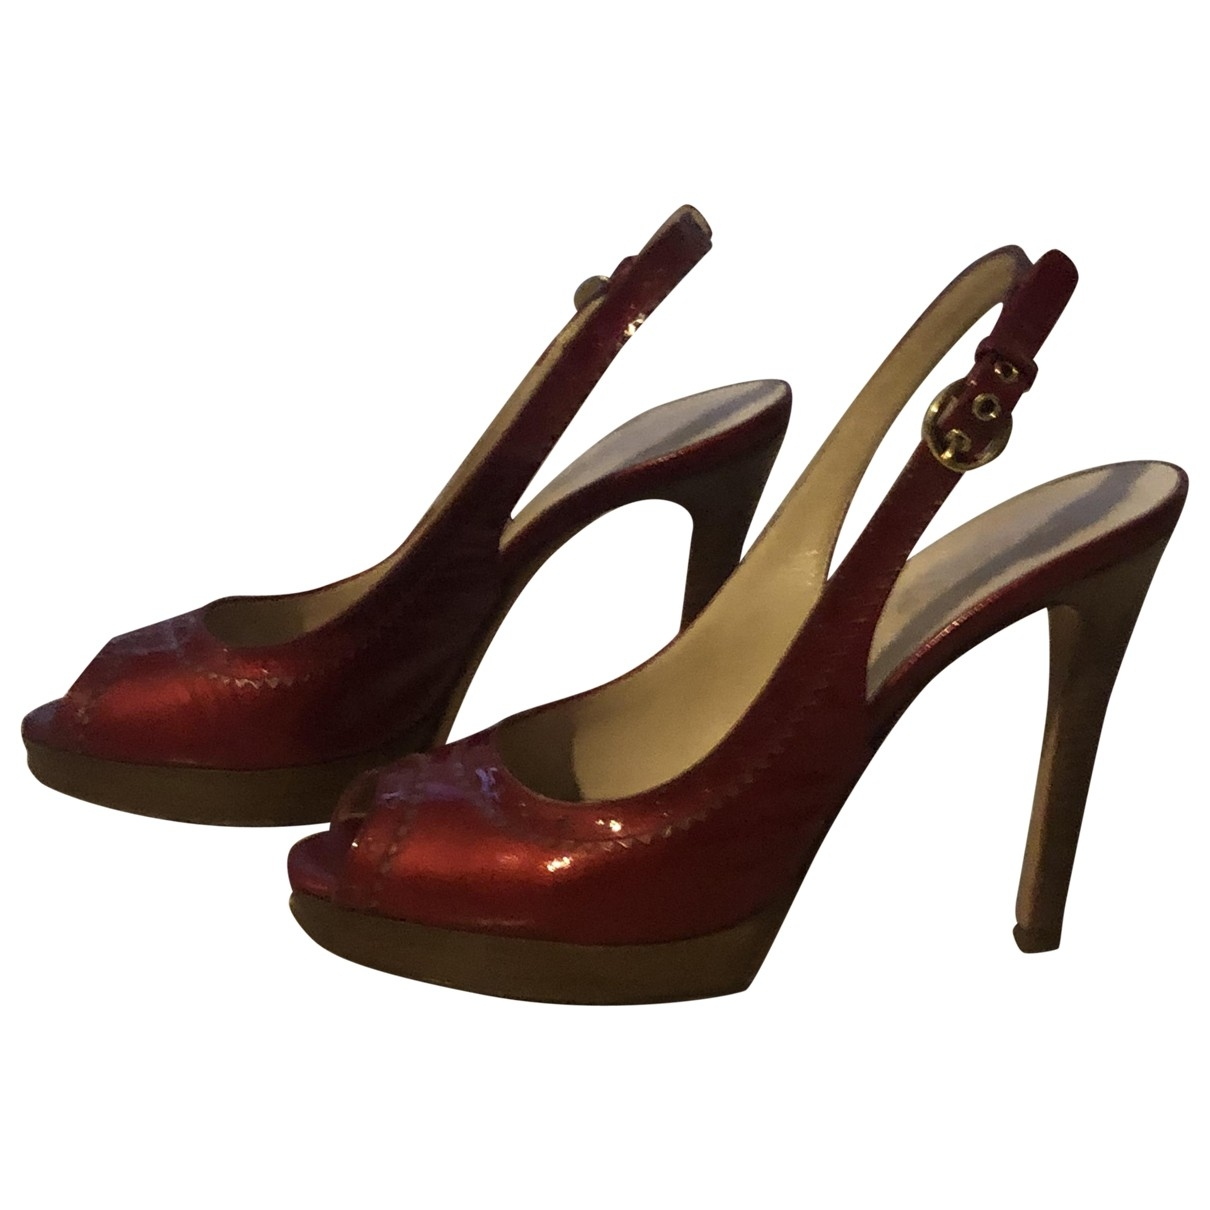 D&g \N Red Patent leather Sandals for Women 38 EU